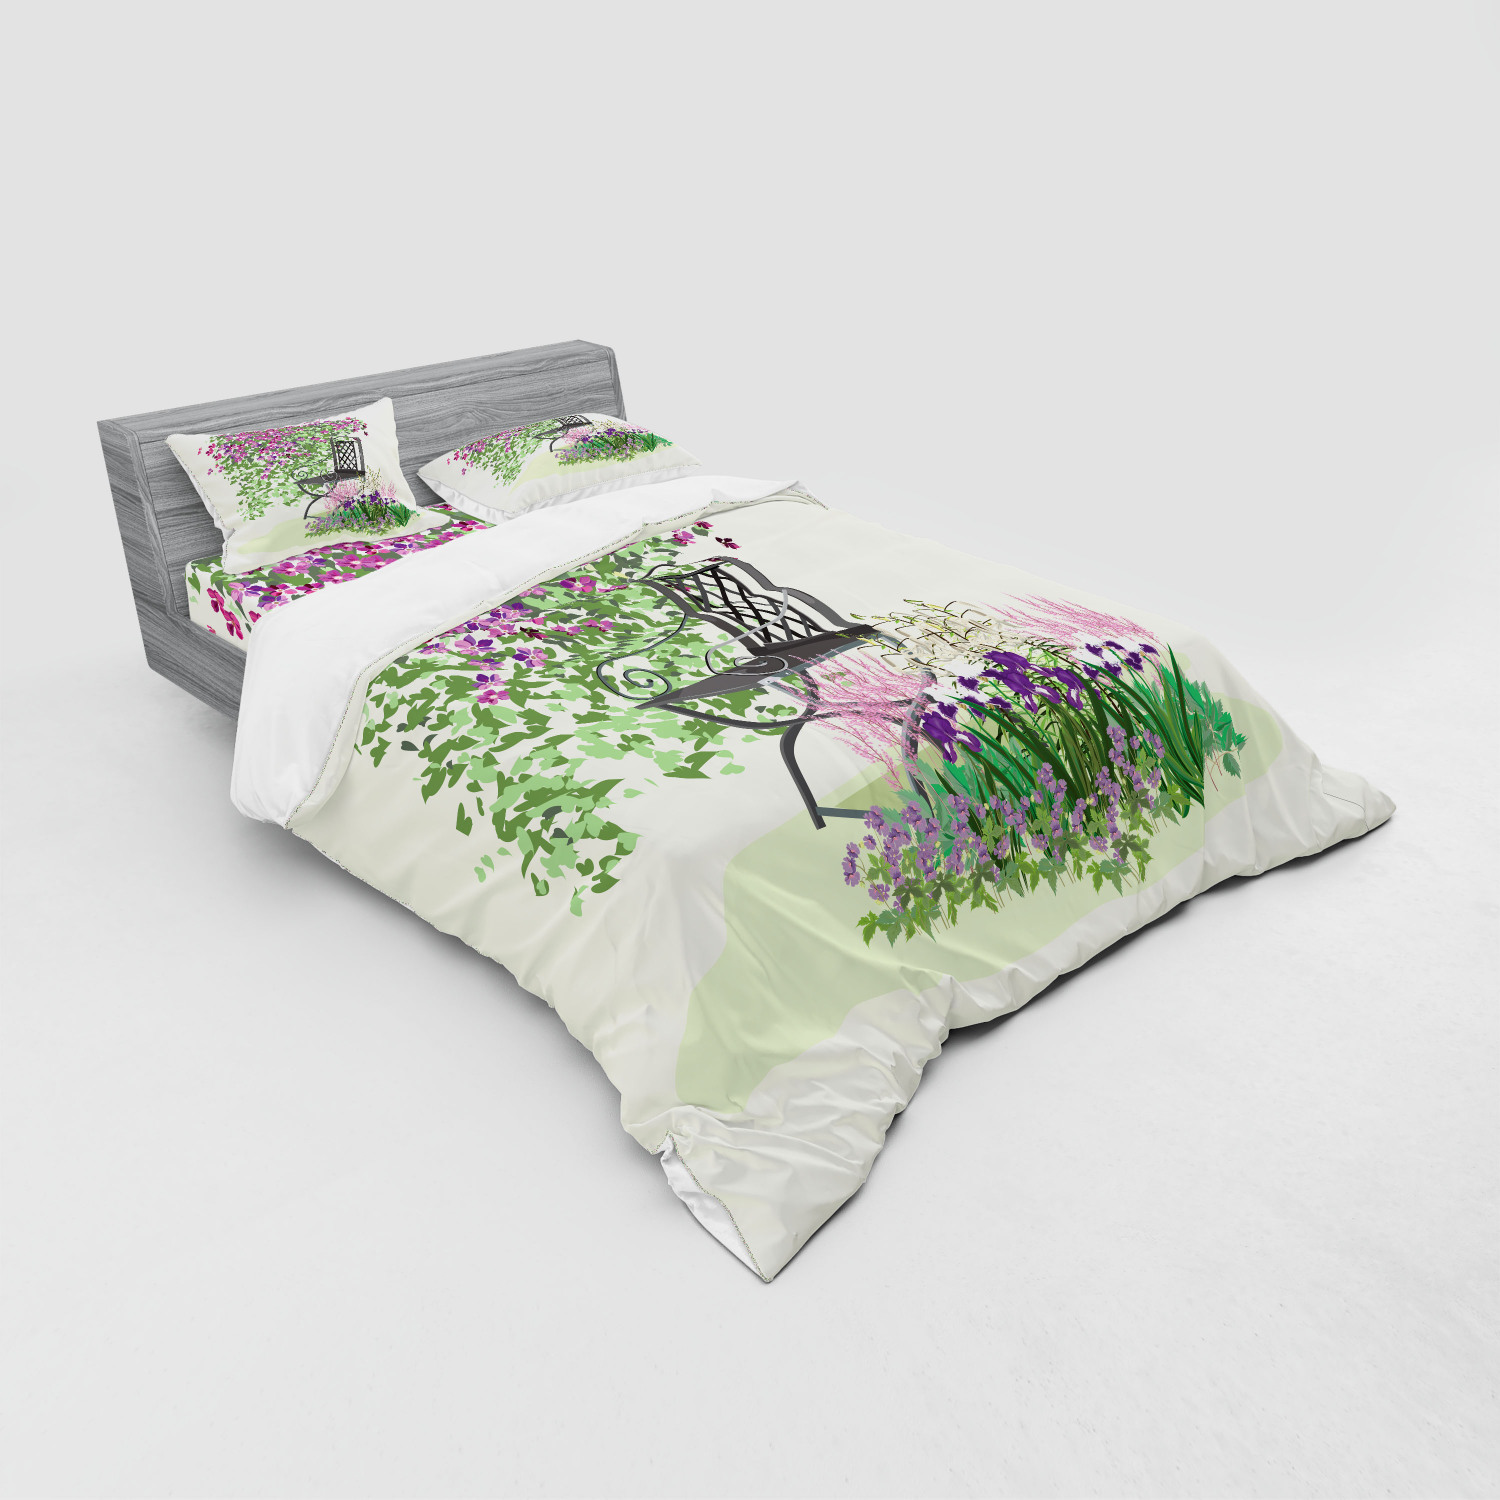 thumbnail 83 - Ambesonne Summer Bedding Set Duvet Cover Sham Fitted Sheet in 3 Sizes